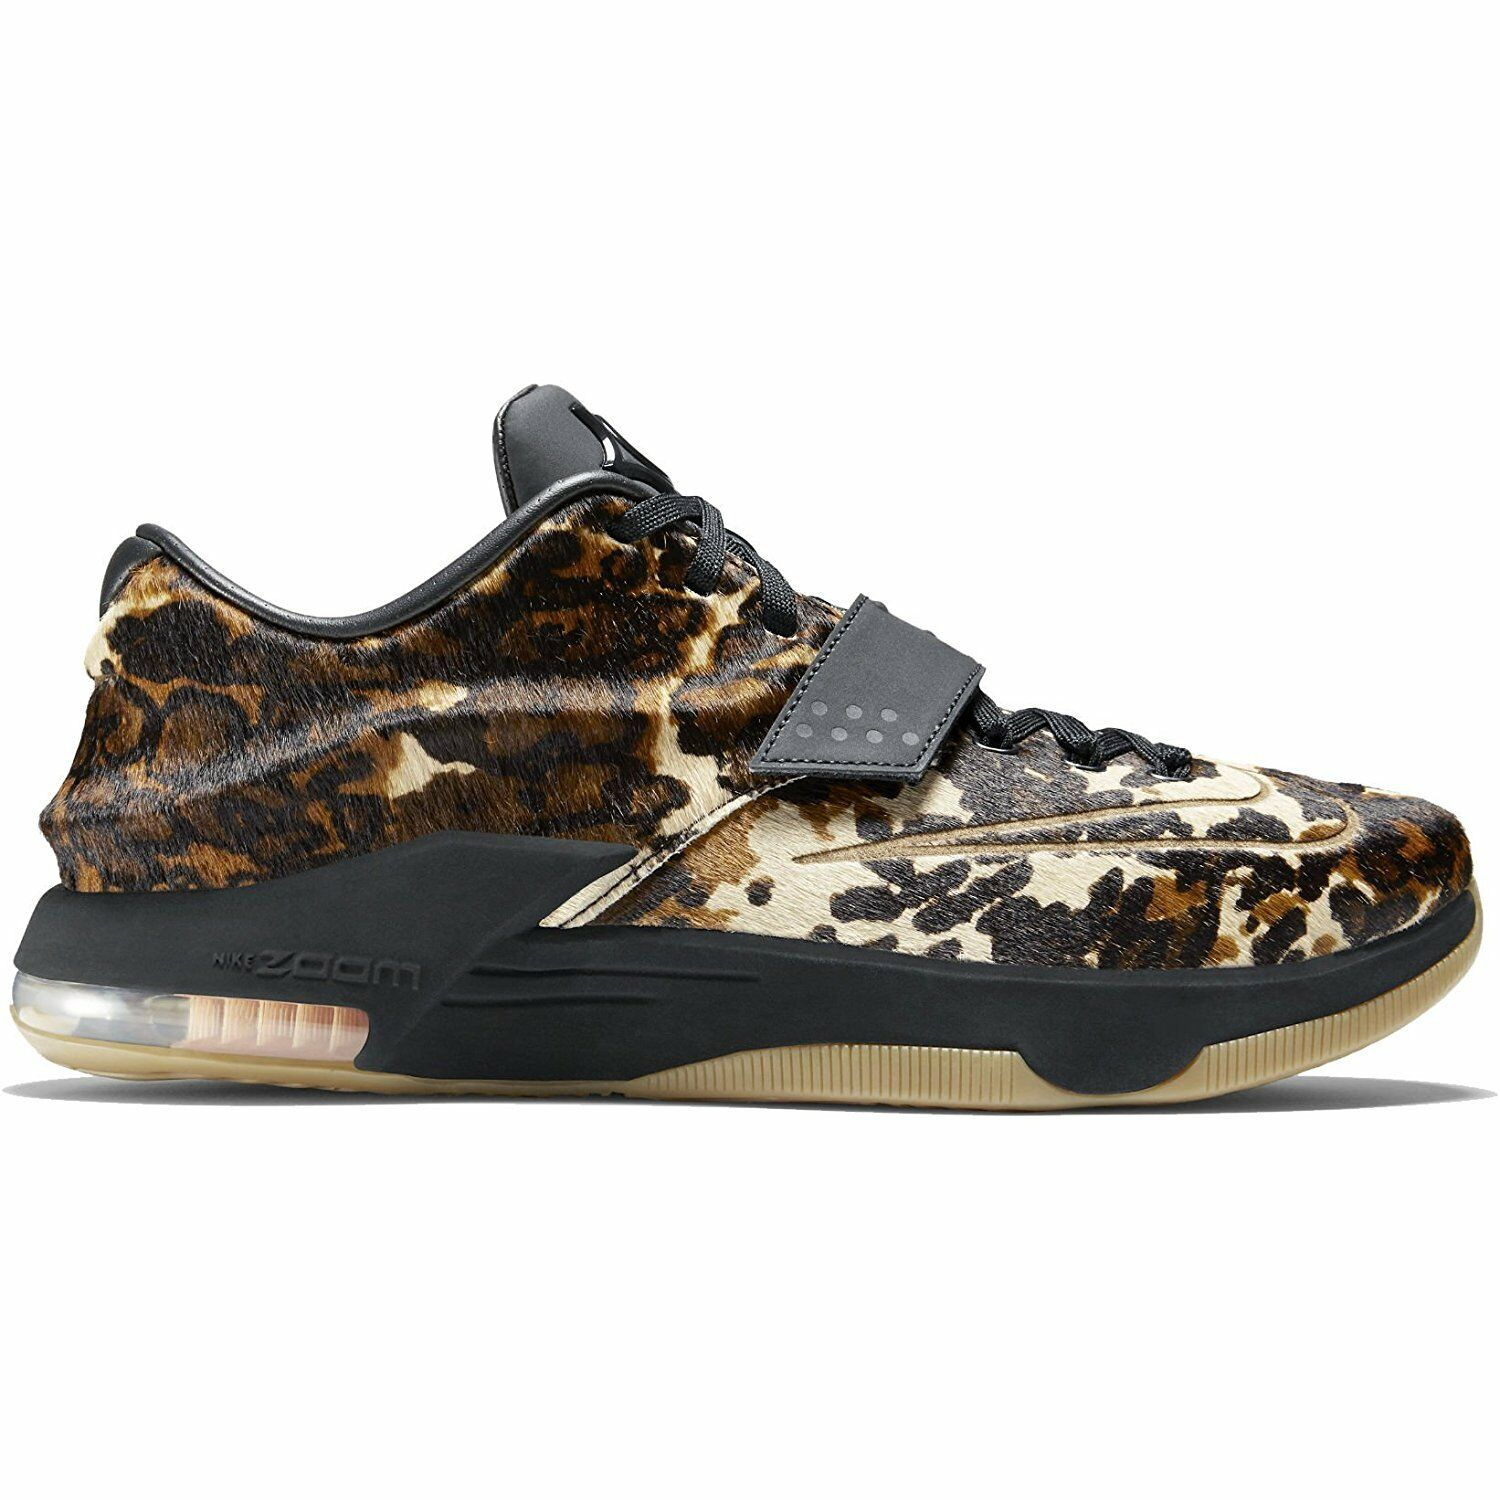 Hombre Nike Kevin Durant VII EXT Moda Quick Strike Leopardo Athletic Moda EXT 716654 001 37dd78